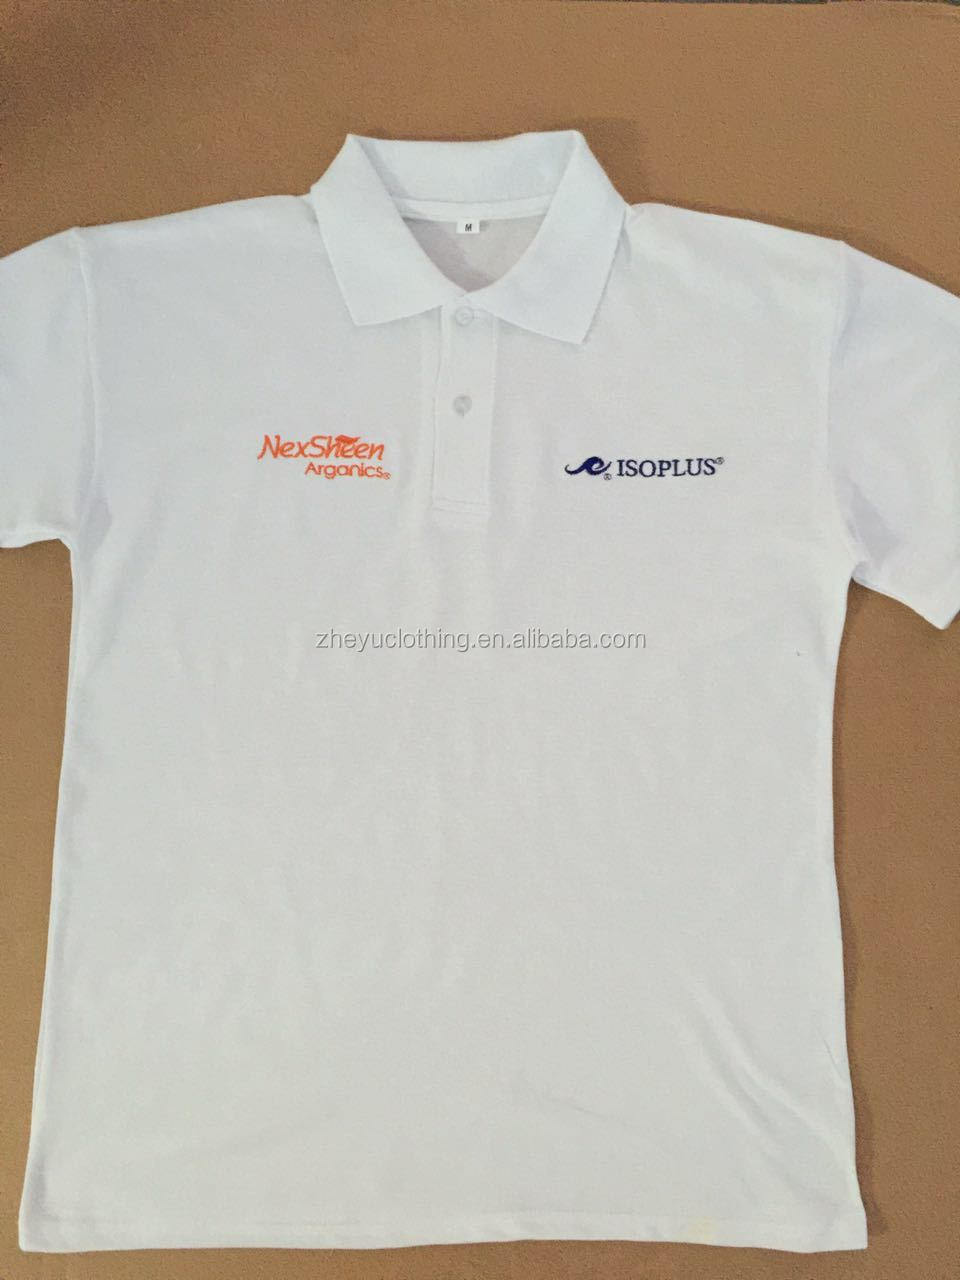 Grey Color Soft Pique Cotton Polyester Blend Polo T Shirt With Heat